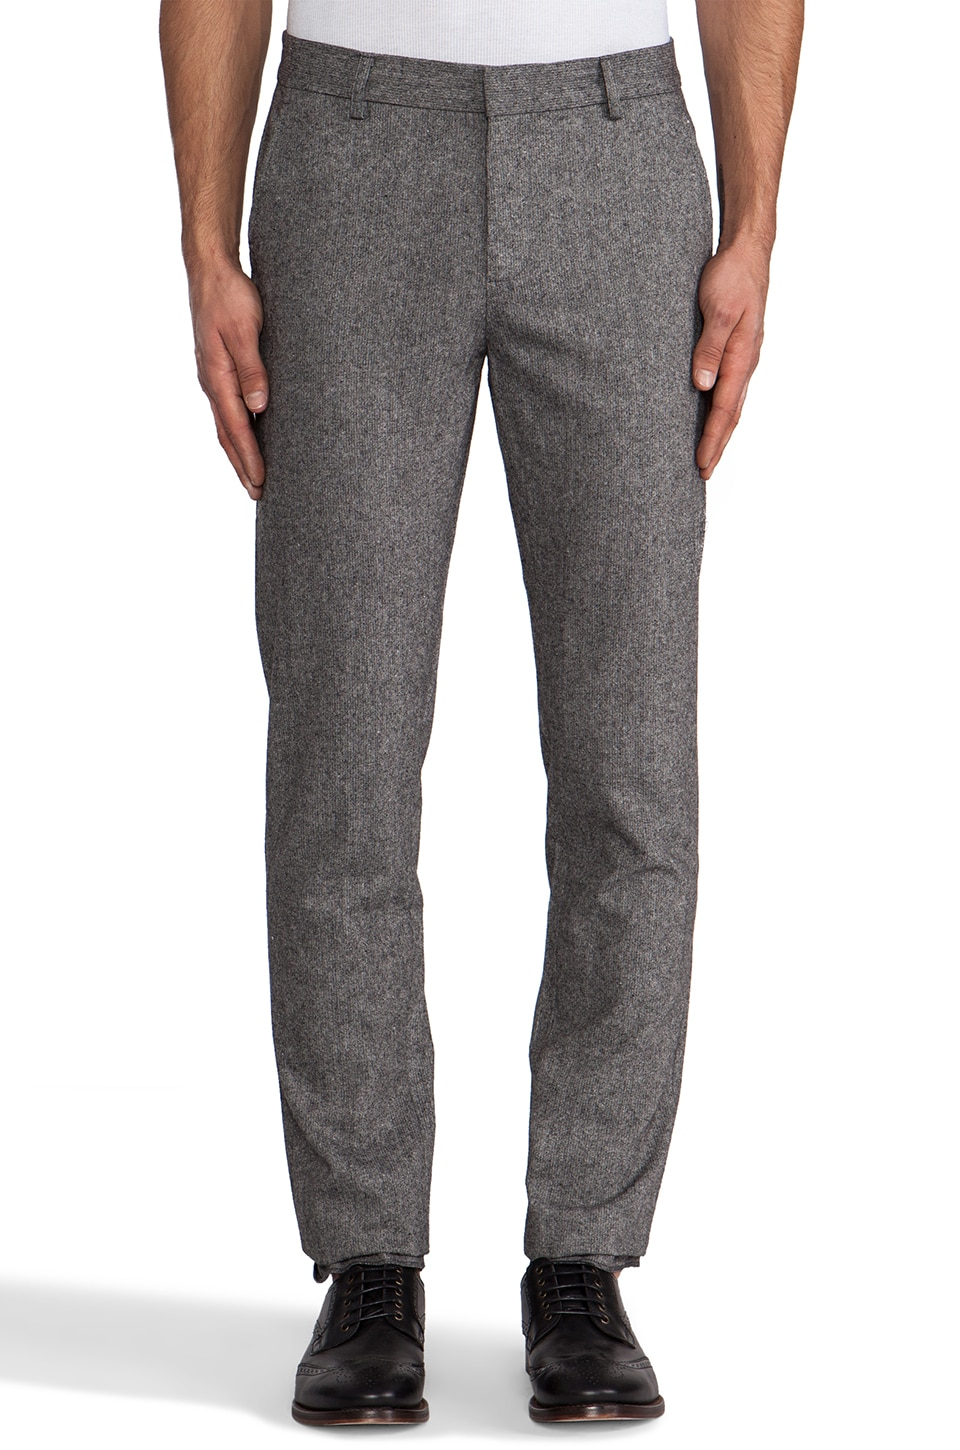 Shades of Grey by Micah Cohen Slim Fit Suit Pant in Grey Tweed